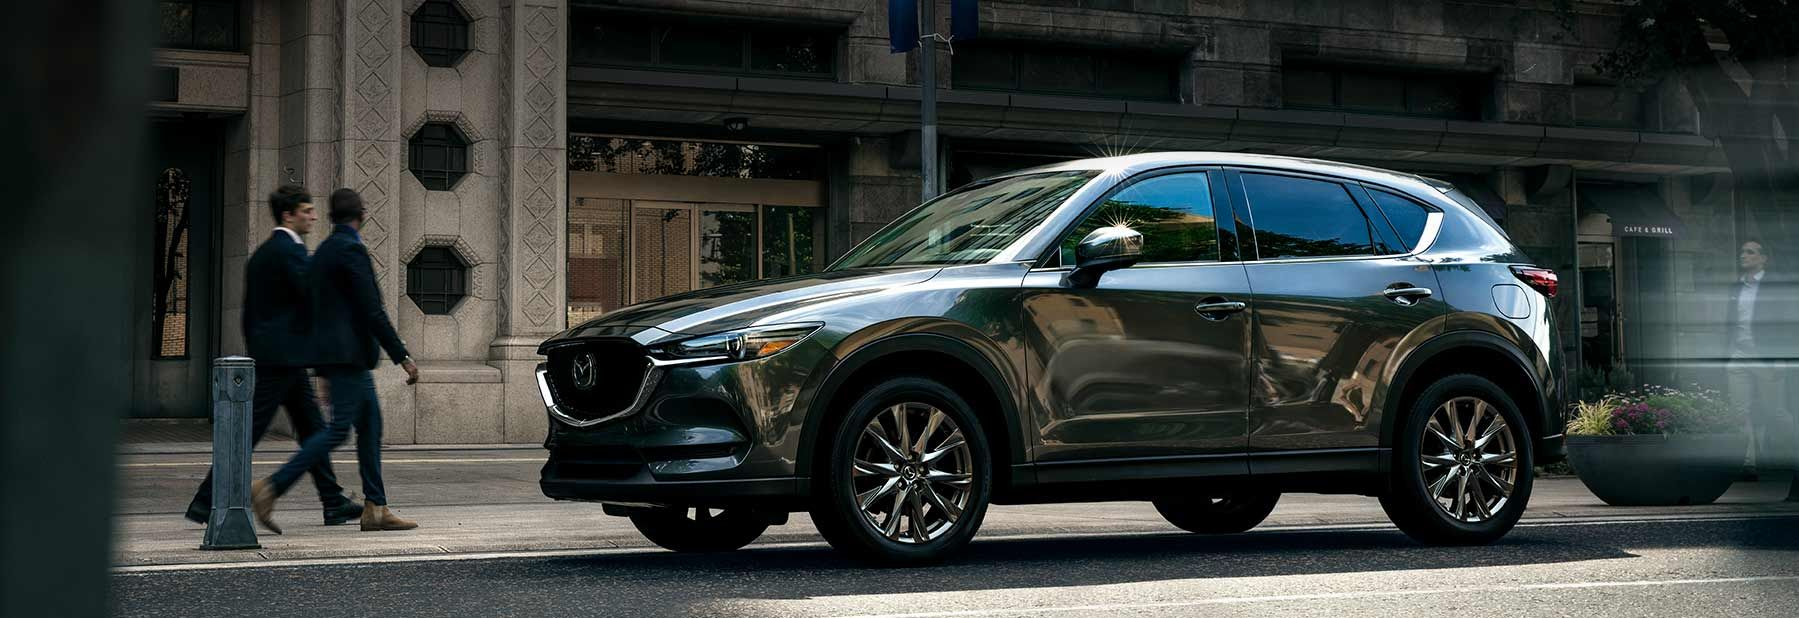 2019 Mazda CX-5 for Sale near Lakeland, FL